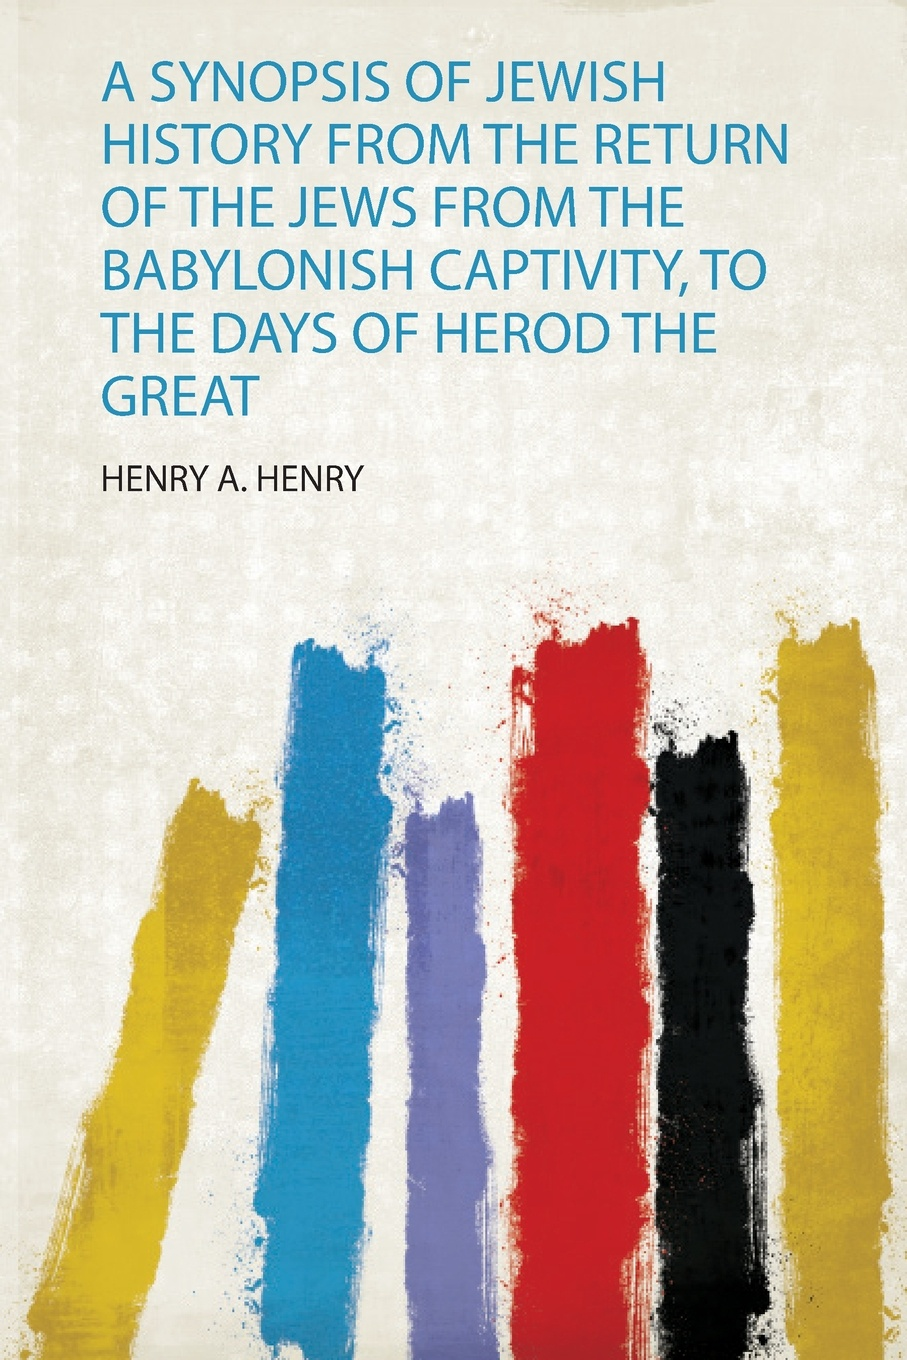 A Synopsis of Jewish History from the Return of the Jews from the Babylonish Captivity, to the Days of Herod the Great francis william newman a history of the hebrew monarchy from the administration of samuel to the babylonish captivity